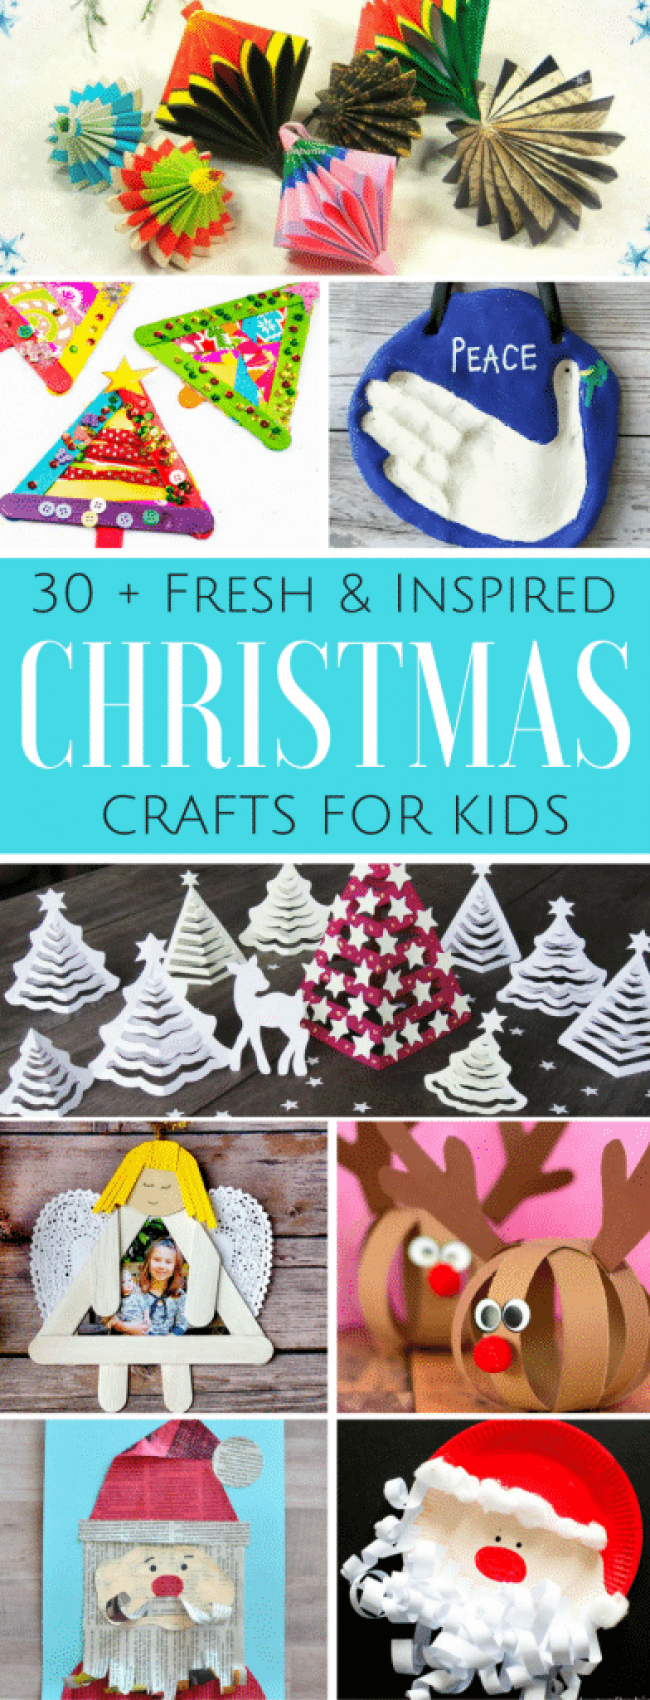 Arty Crafty Kids | Christmas Crafts for Kids | 30+ Fresh and Inspired Kids Christmas Crafts #christmas #christmascrafts #christmascraftsforkids #preschoolchristmascrafts